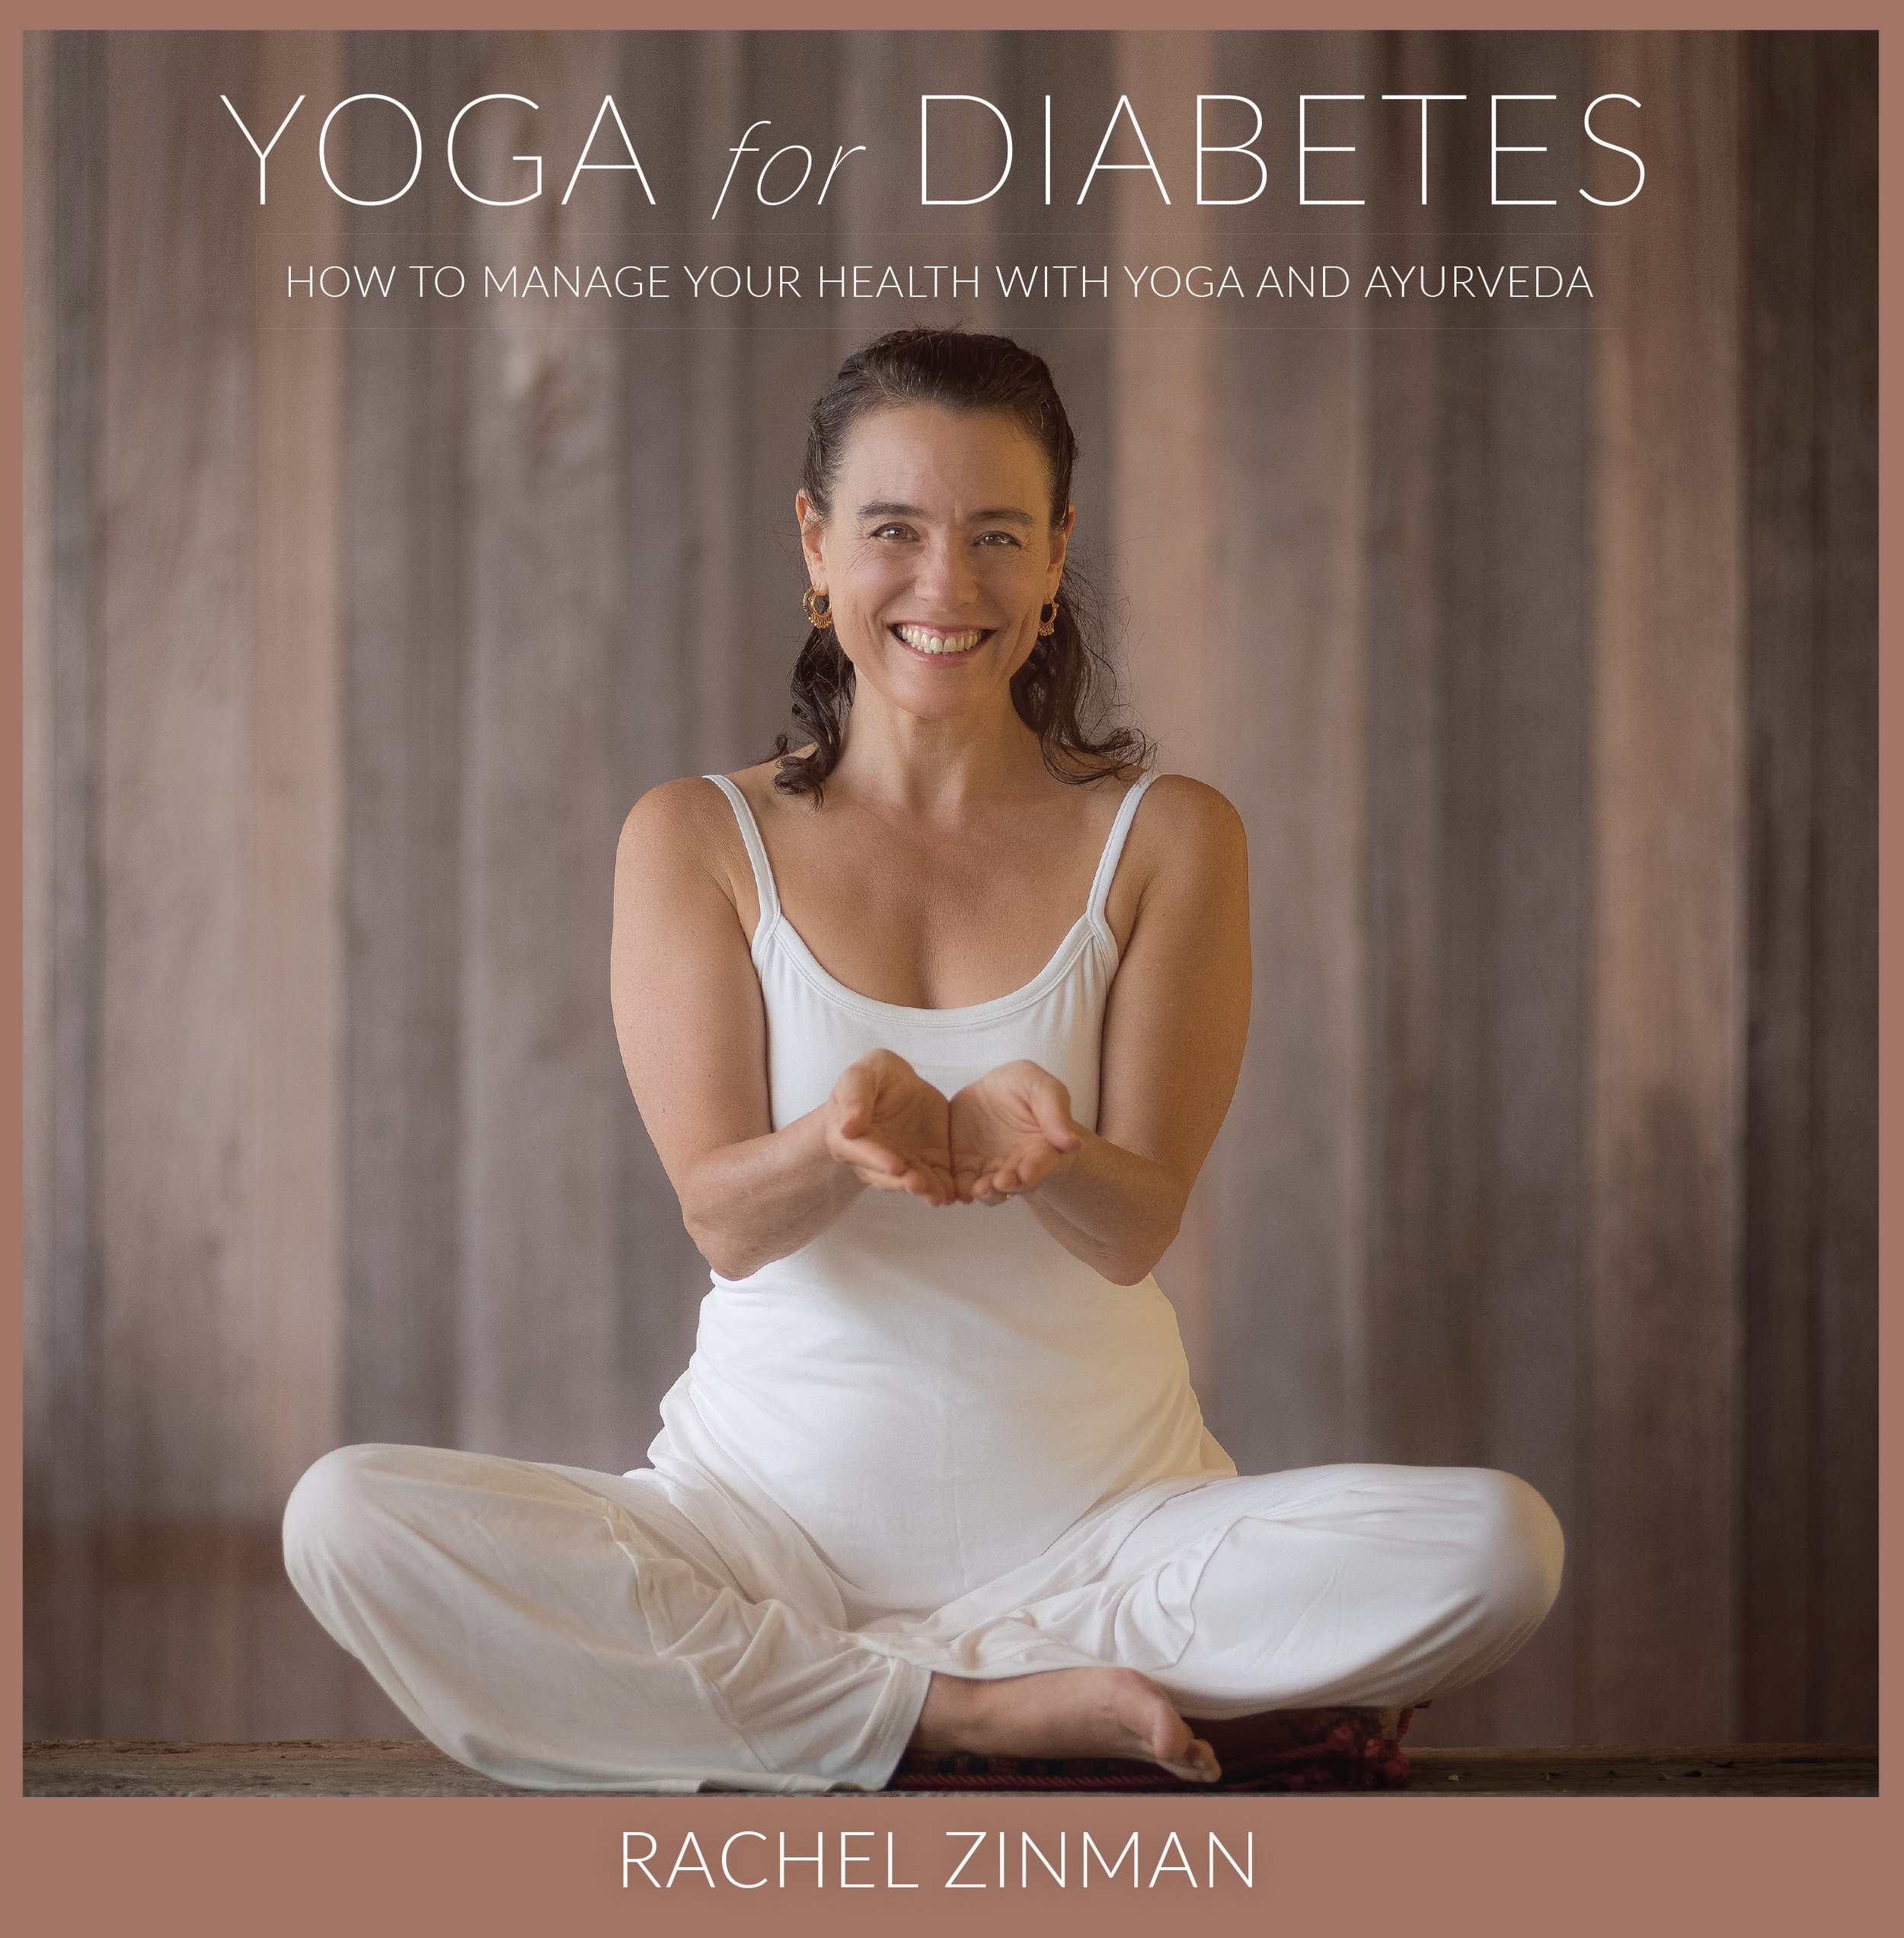 Yoga for Diabetes Cover8 large.jpg